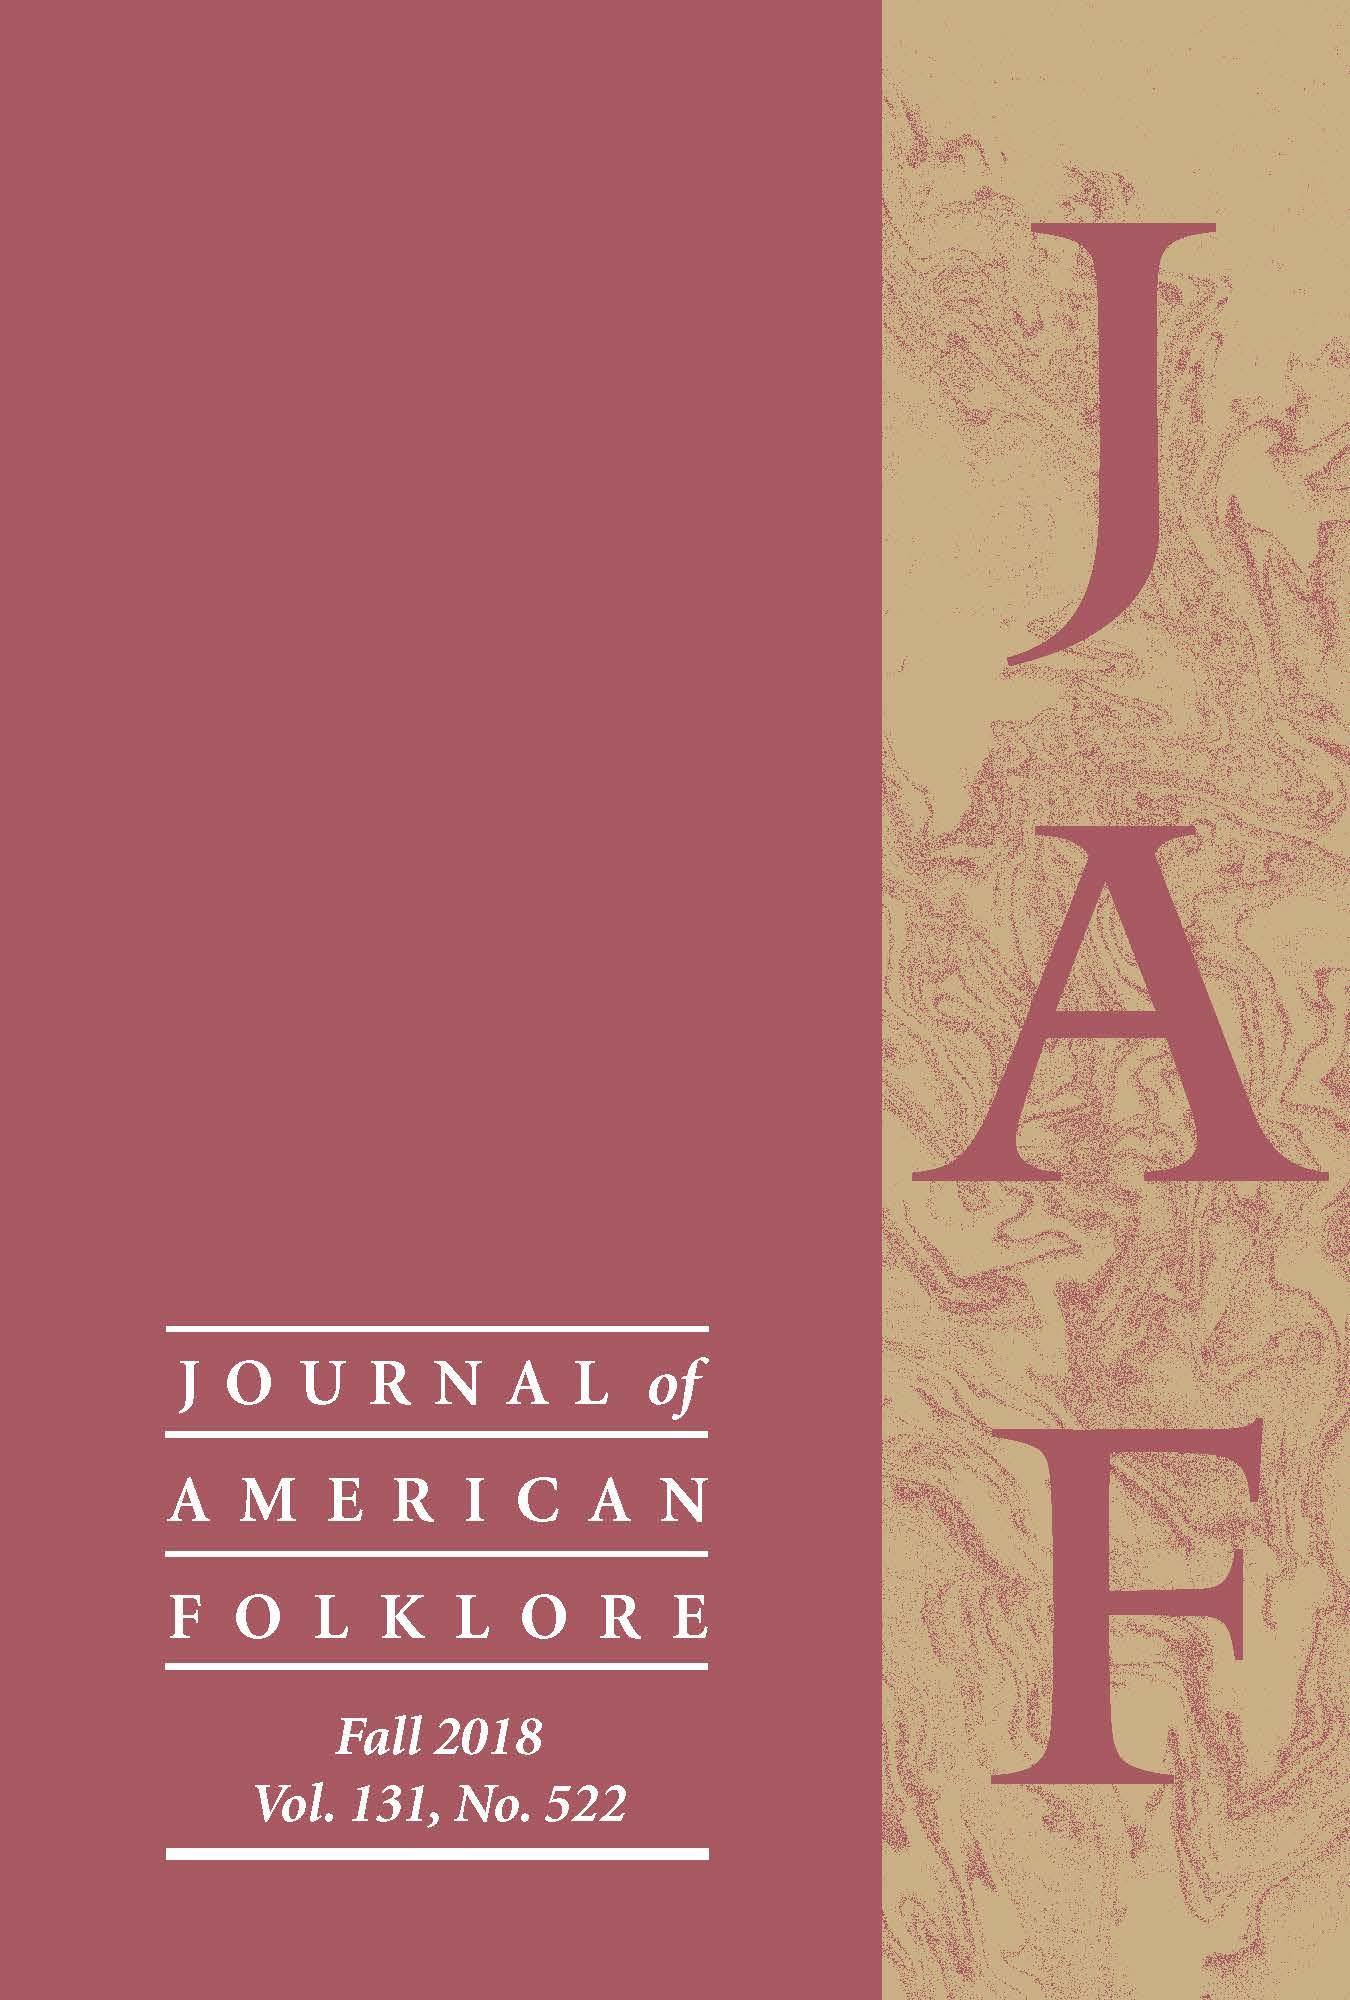 """Fake News"""" From the Journal of American Folklore, Part 7"""